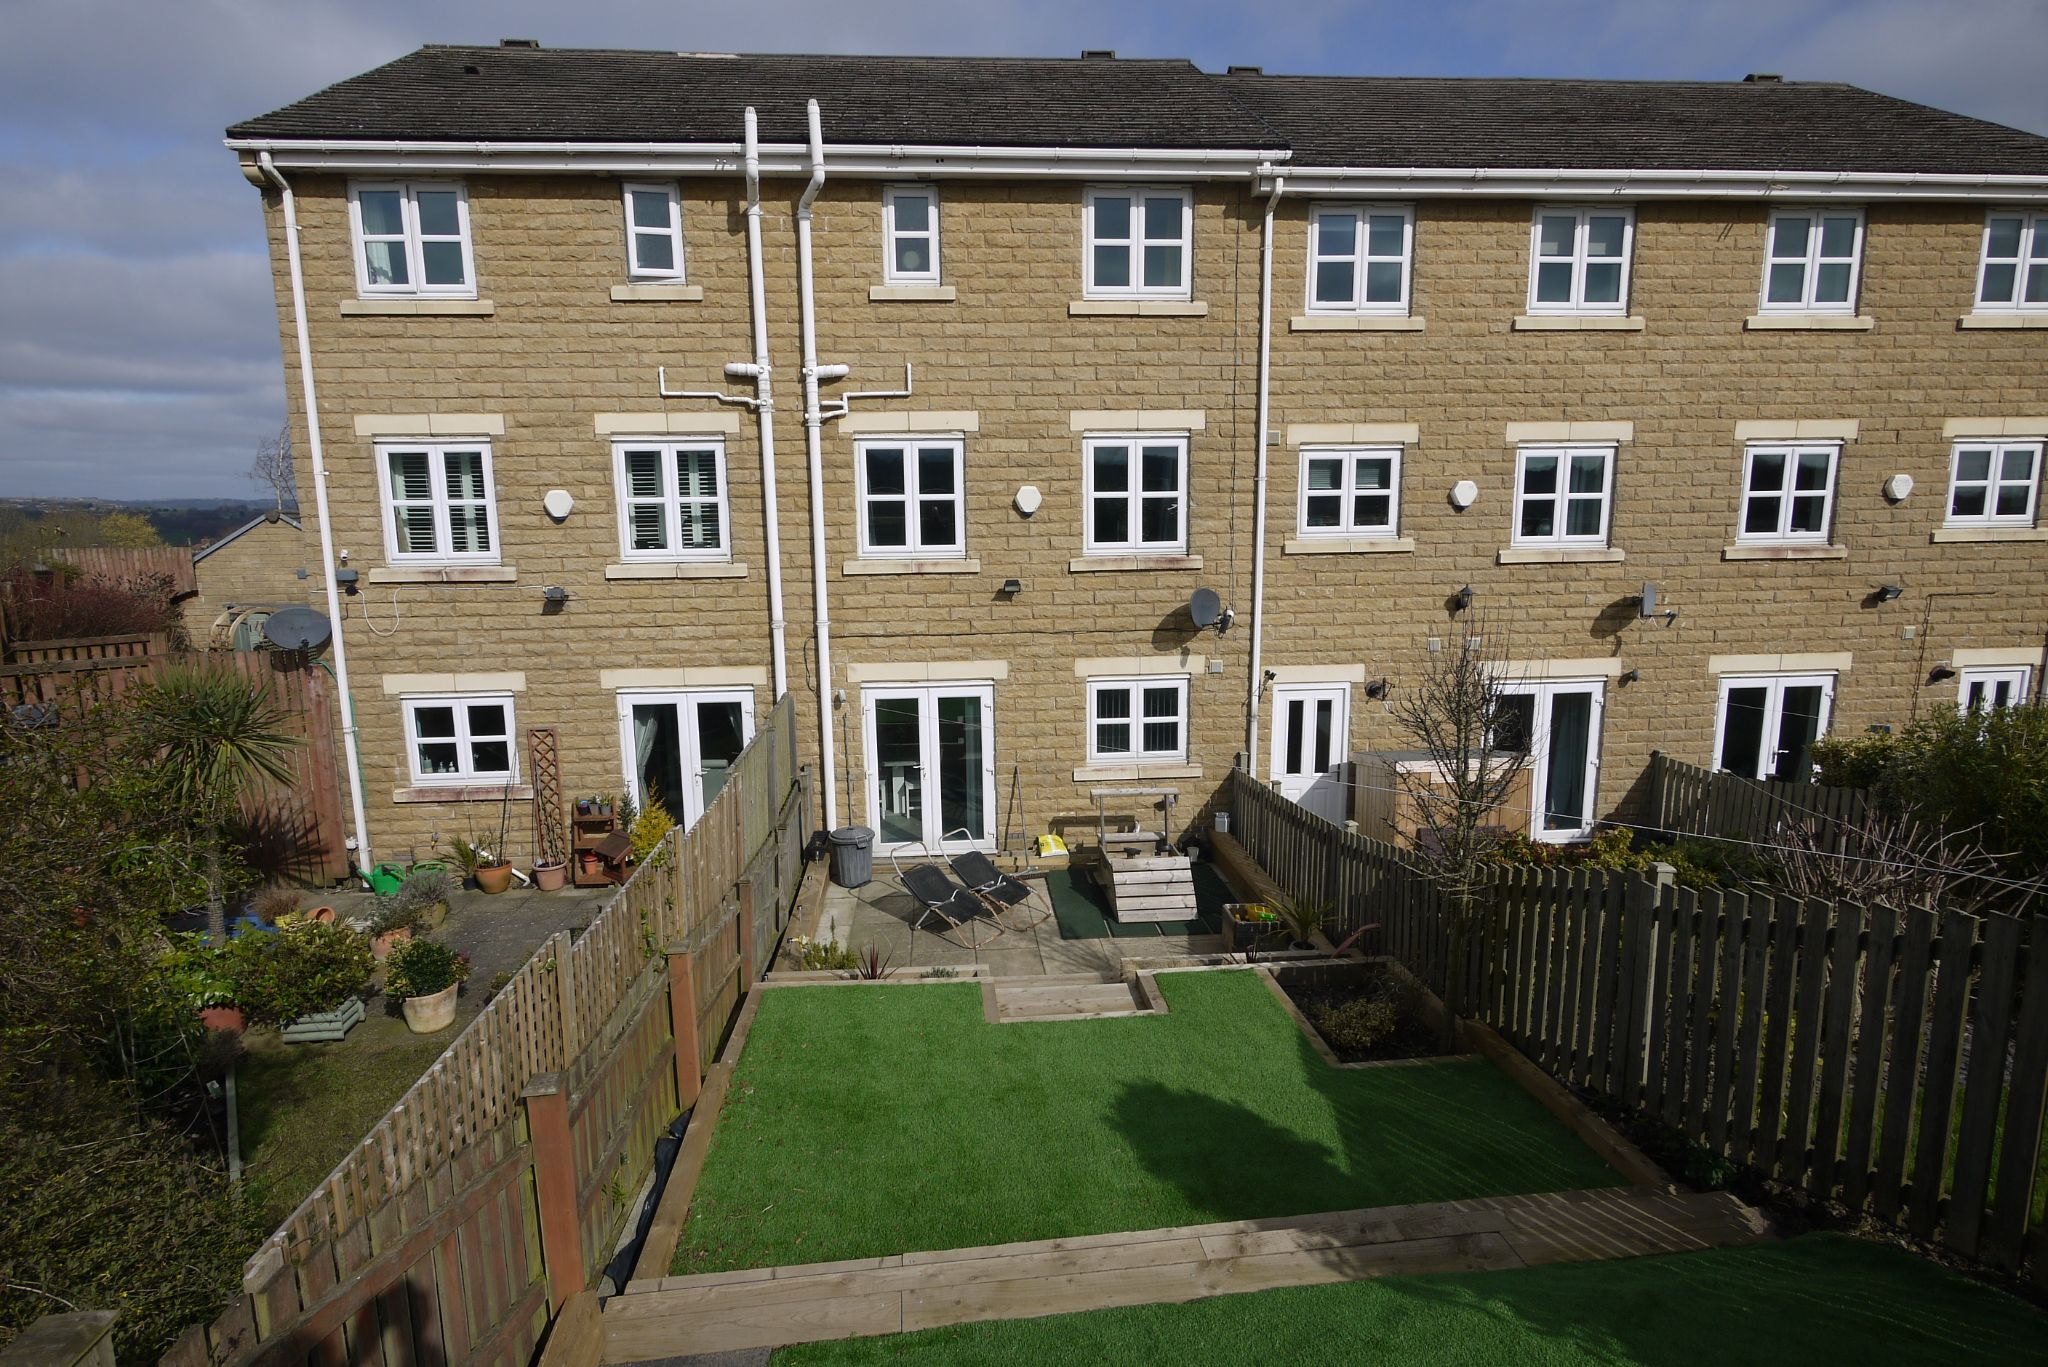 4 bedroom town house SSTC in Brighouse - Rear.